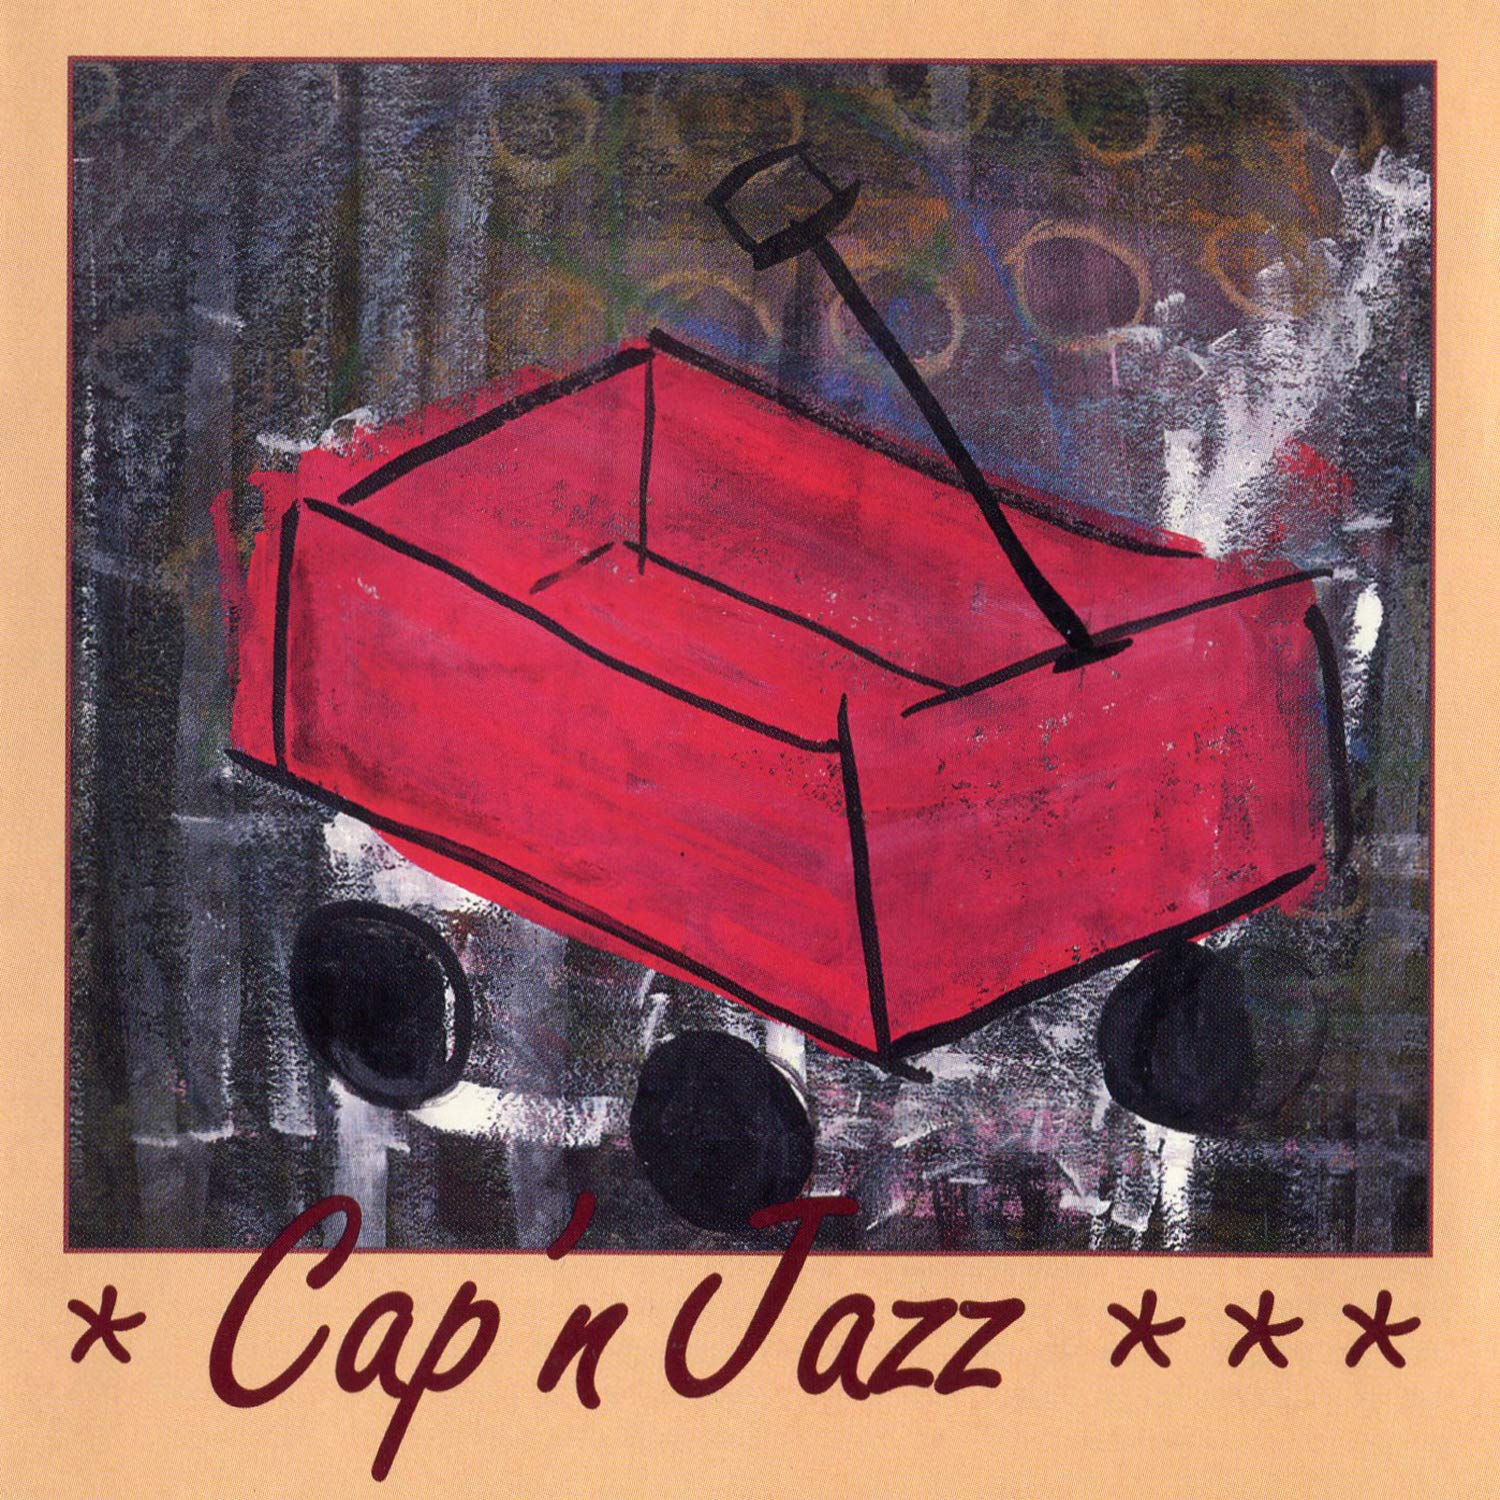 Cassette : Cap'n Jazz - Burritos Inspiration Point Fork Balloon Sports (Cassette)